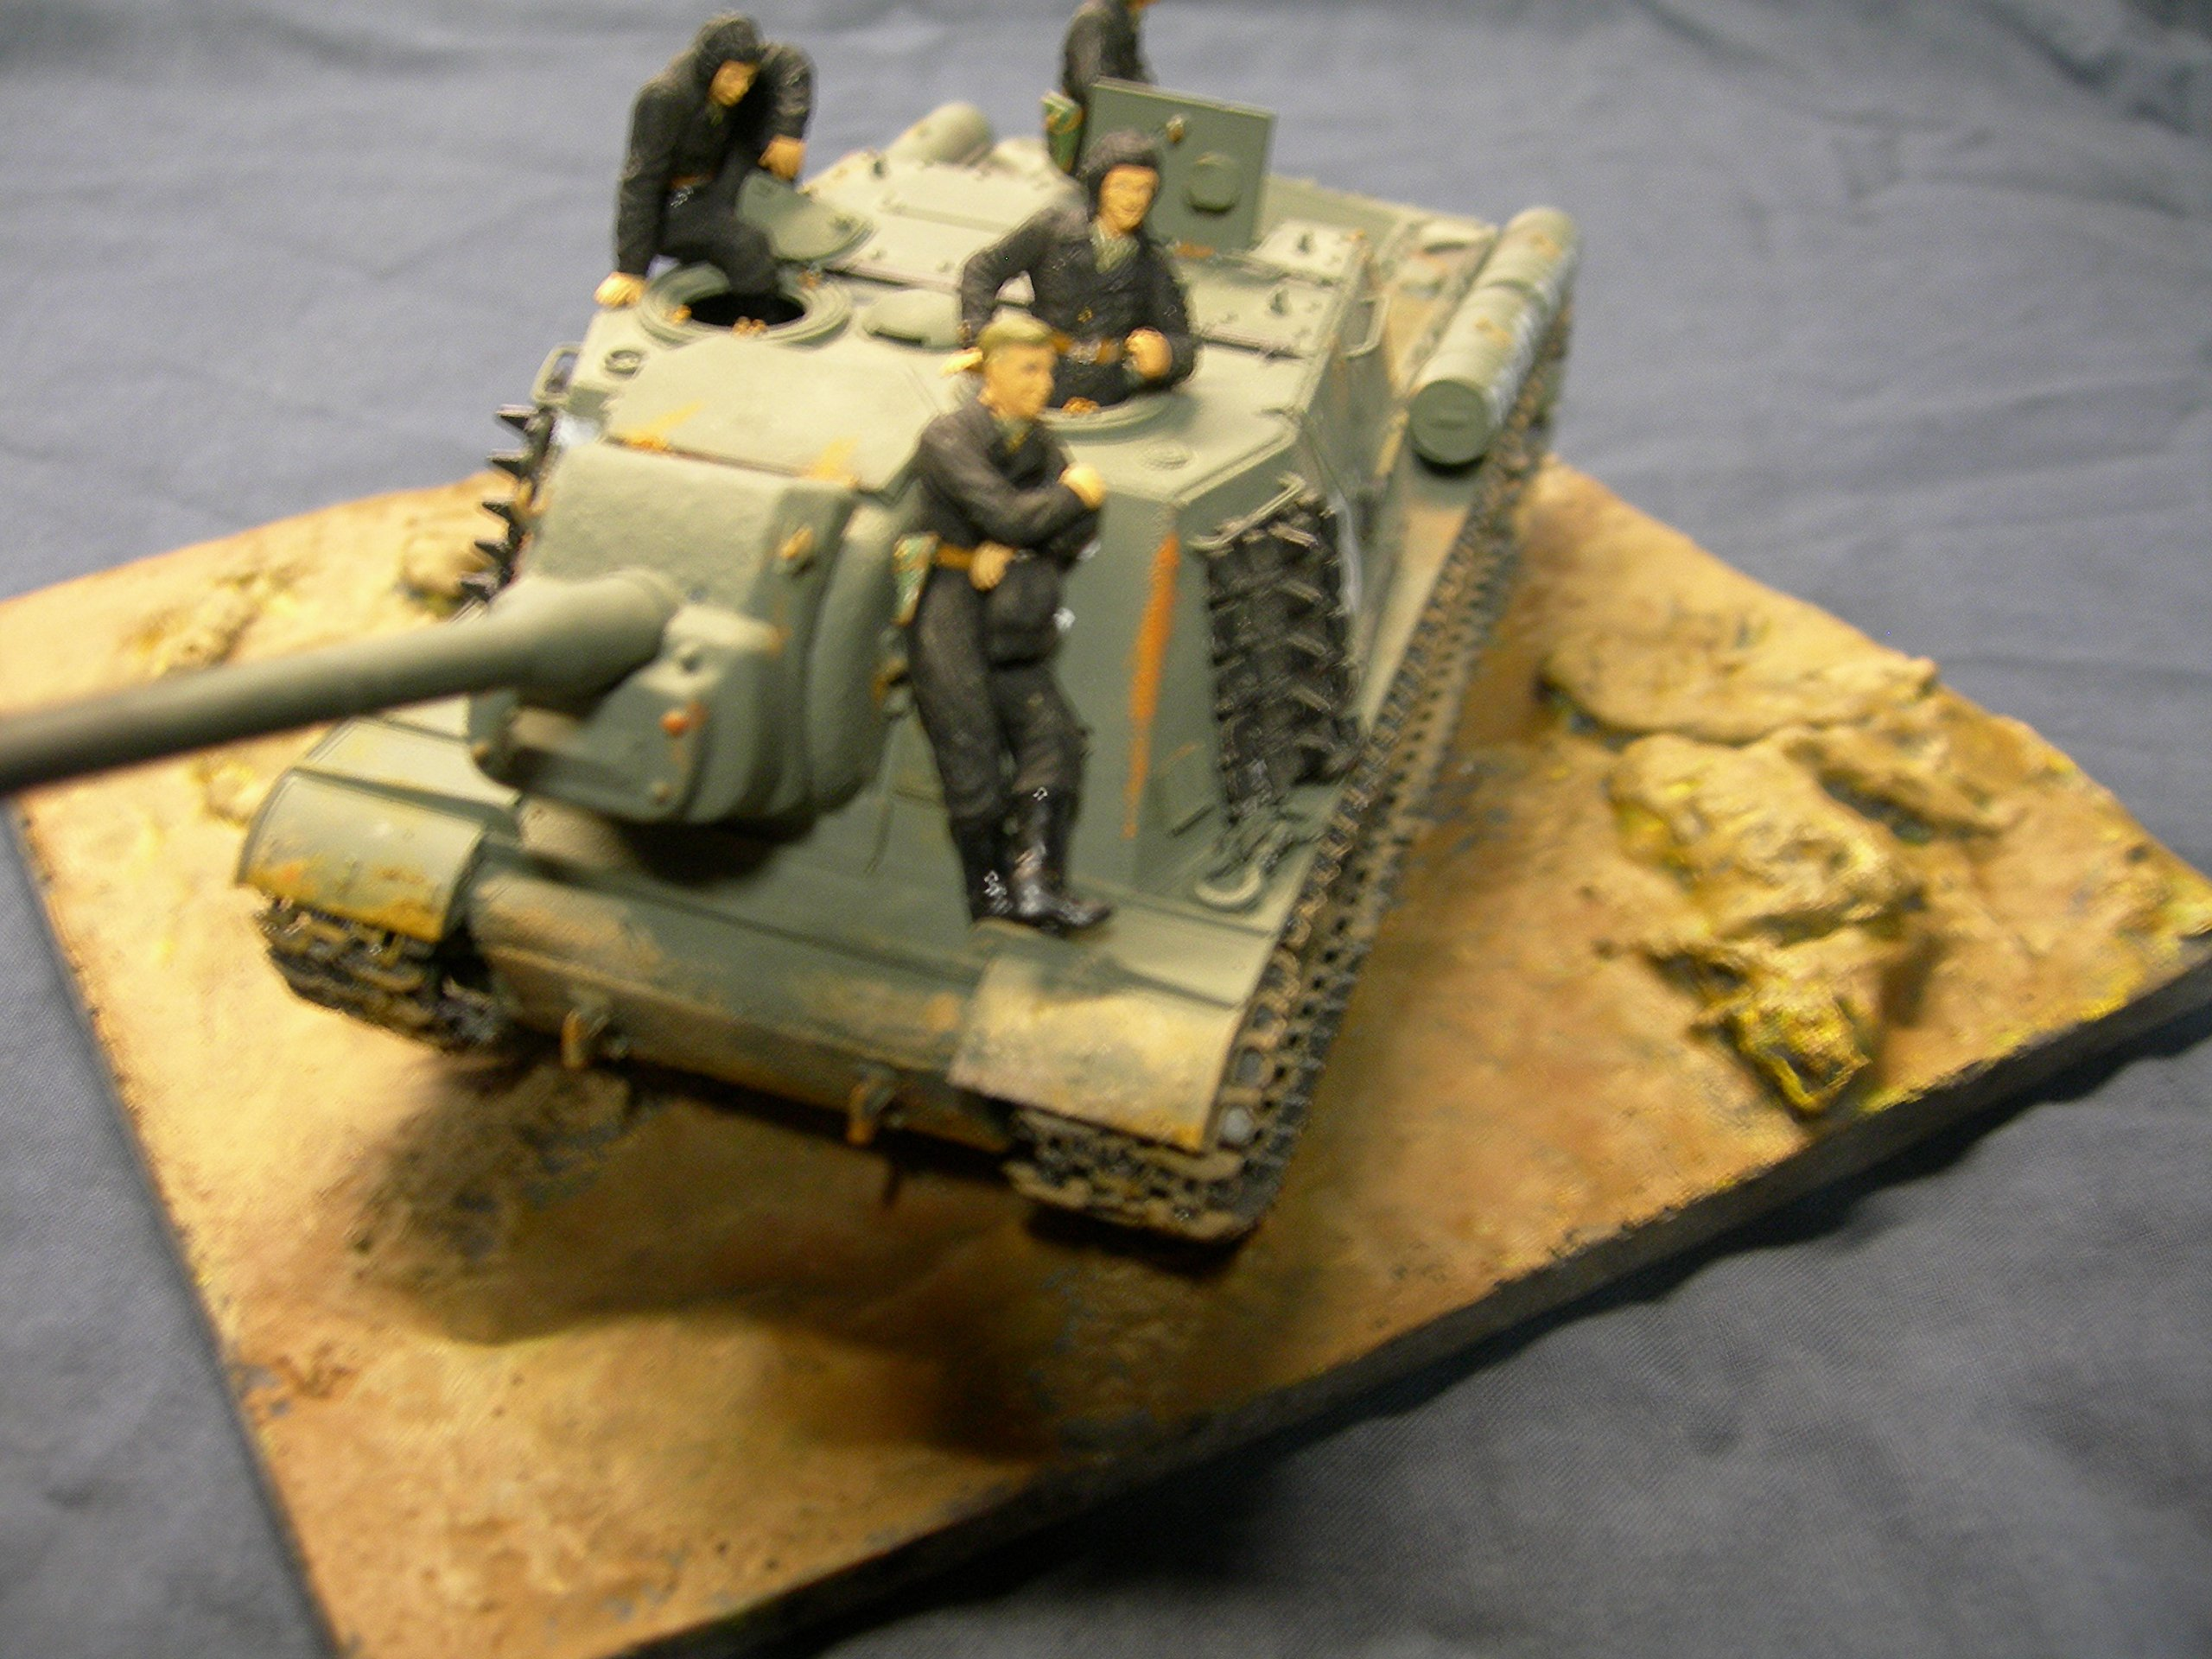 1/35 Scale ~ Country Diorama Base - size 200mm x 155mm by Fields of Glory (Image #2)